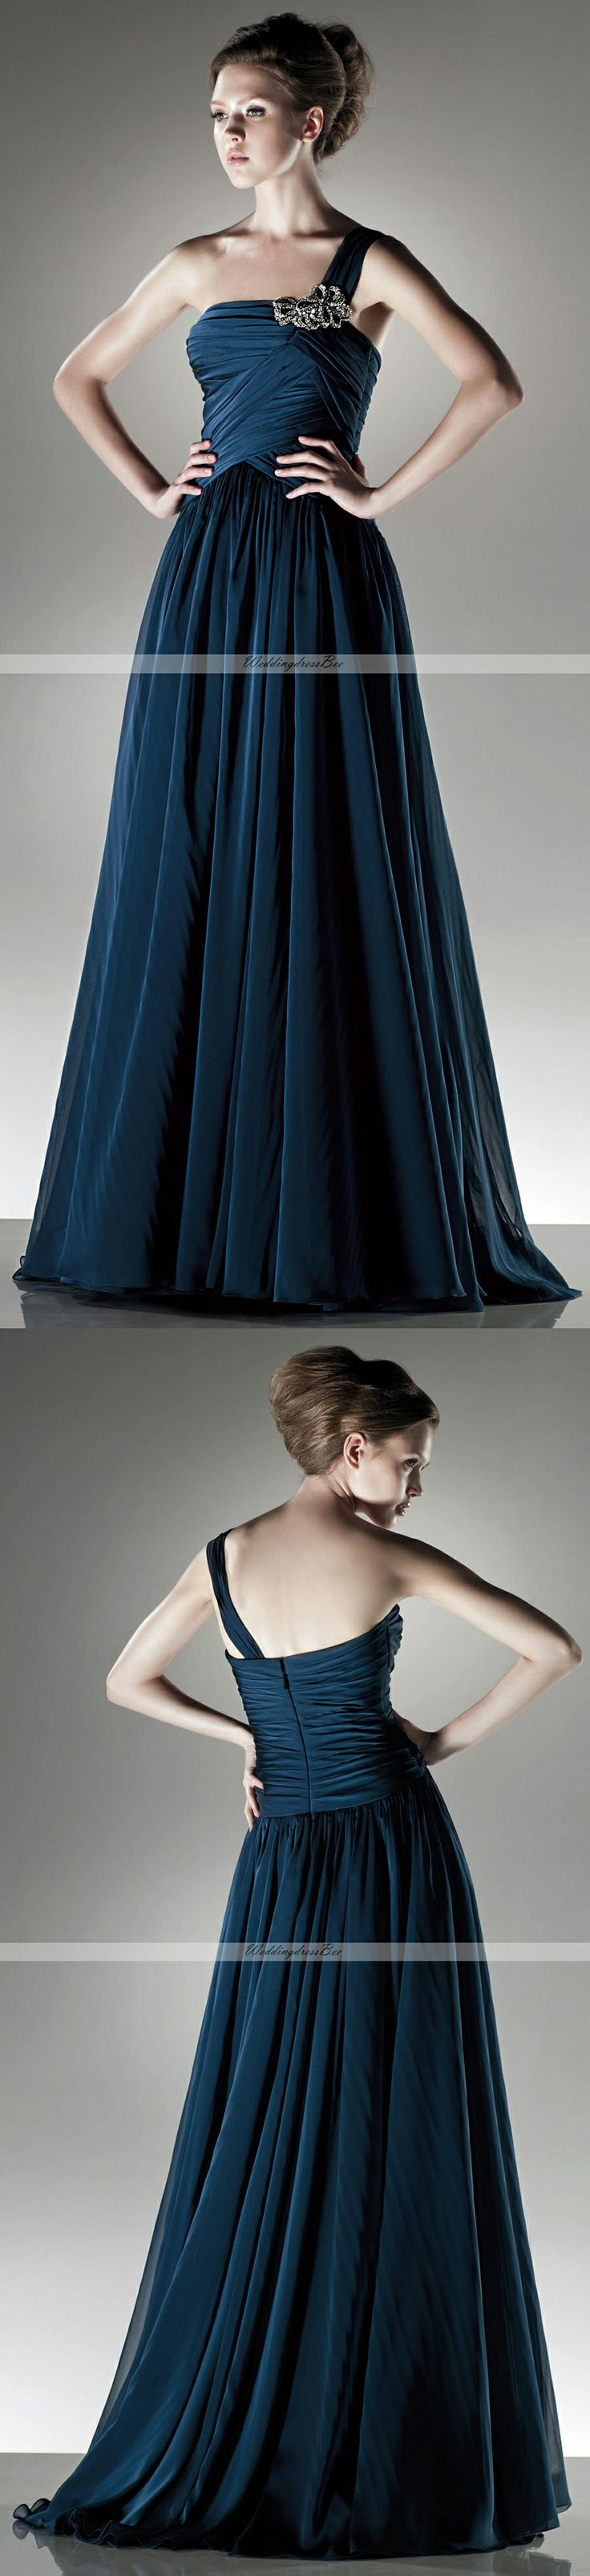 One shoulder A-line chiffon dress Courtney, it comes in royal blue.